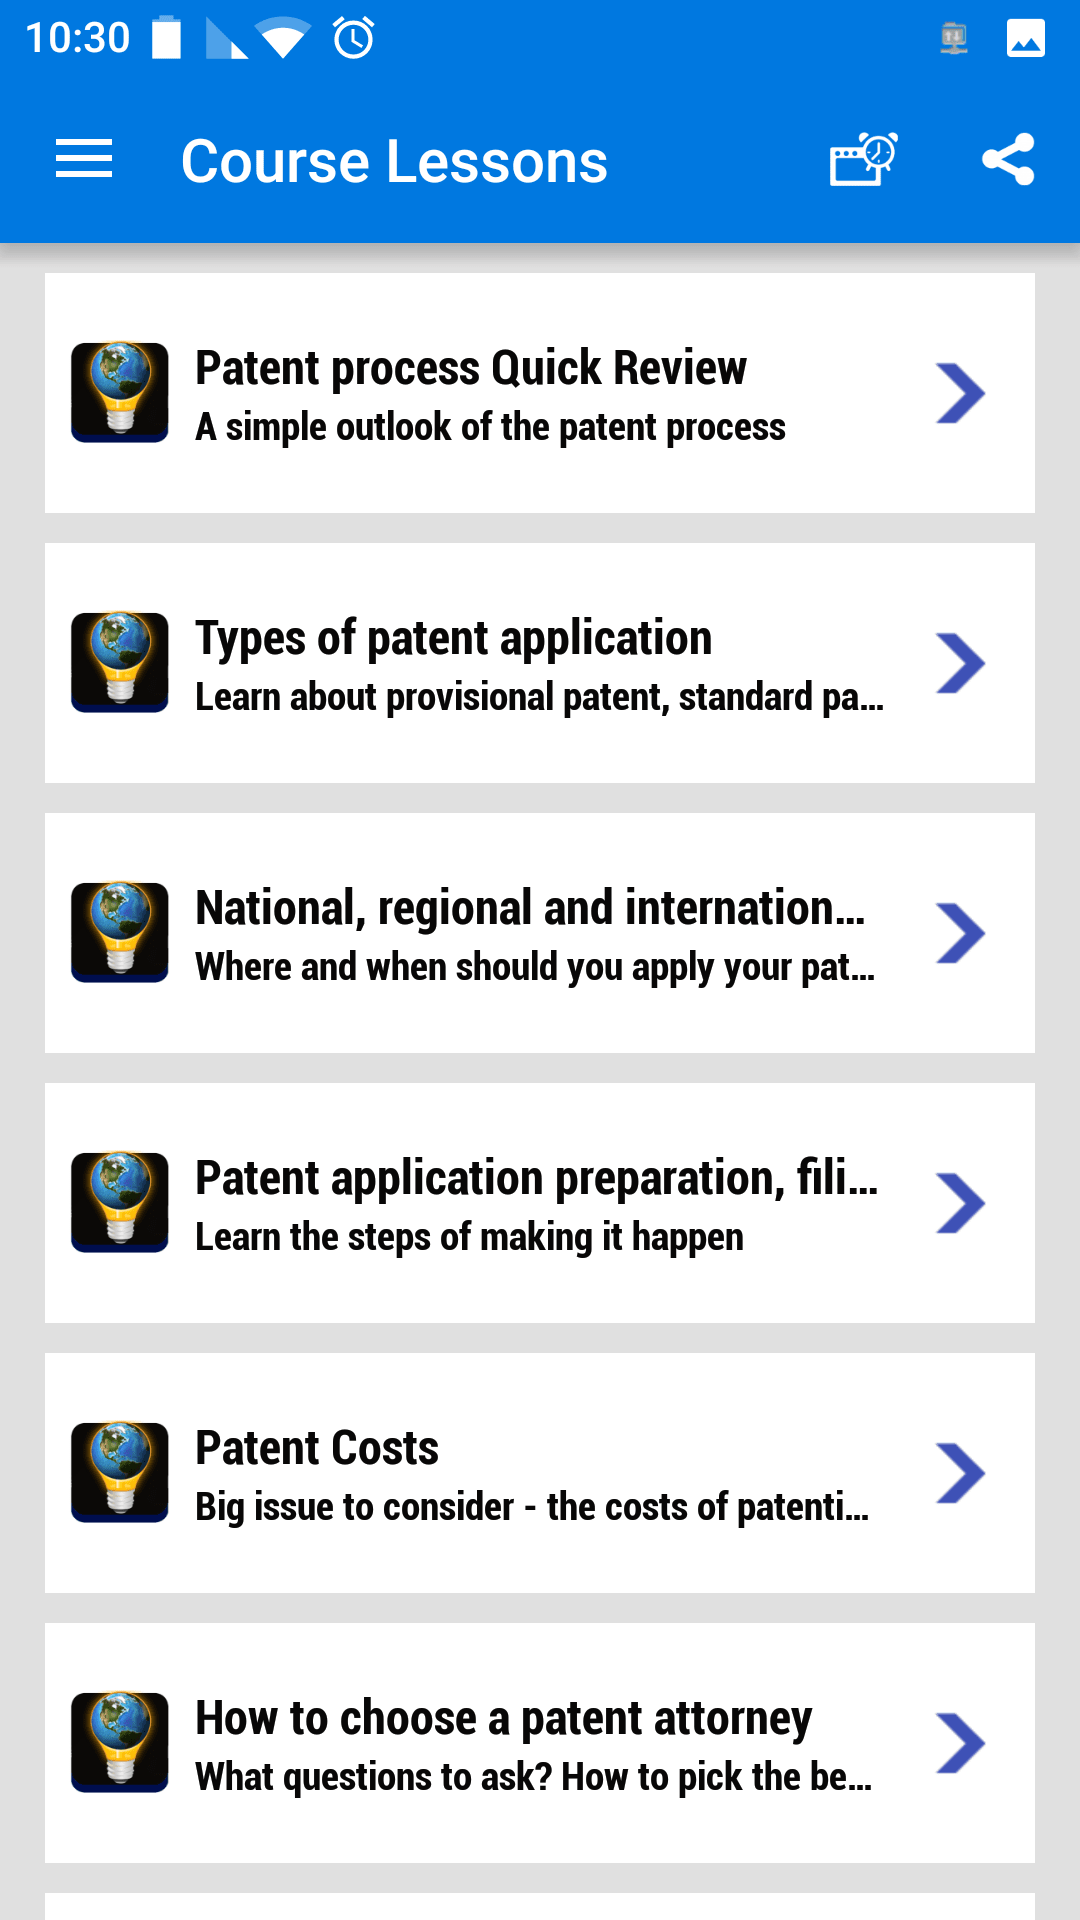 Patent Your Idea - Free Guide